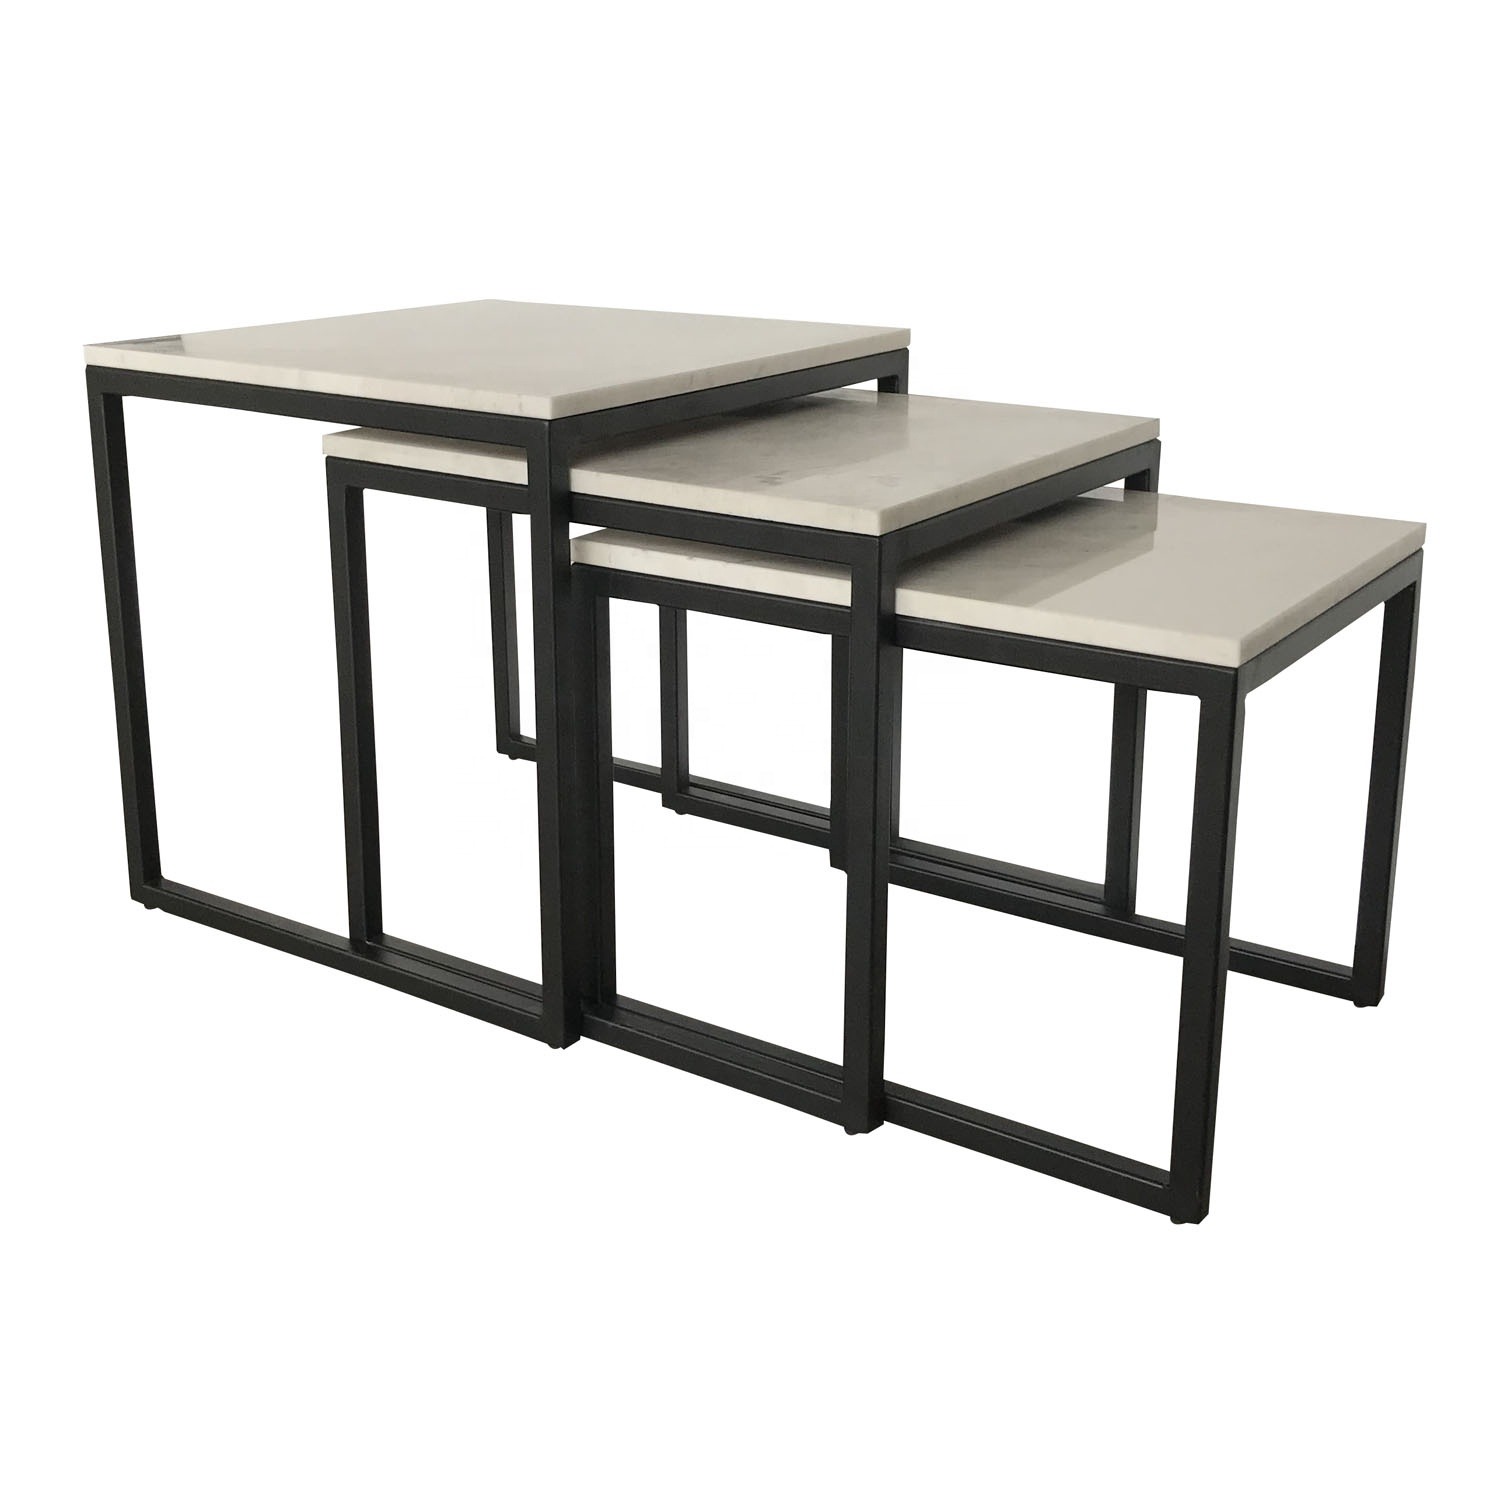 Black Iron Base Marble Top Nest Side Table Buy Marble Nest Table Marble Top Side Table Marble Top Table Product On Alibaba Com